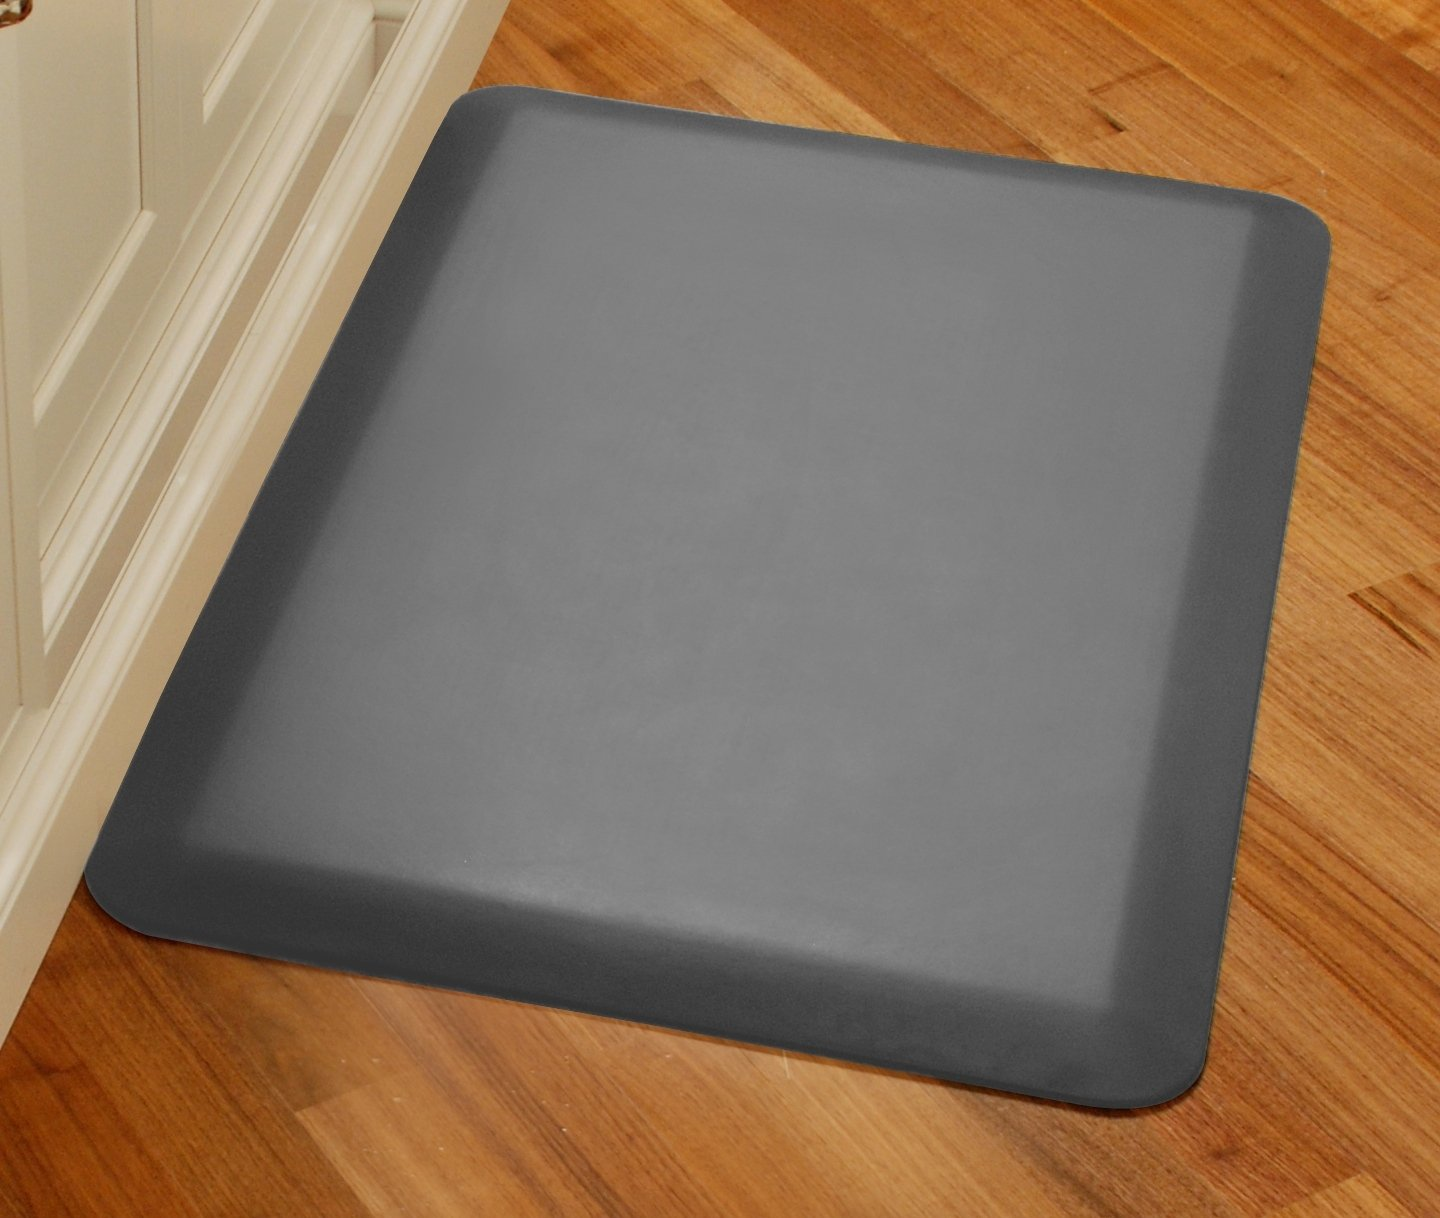 WellnessMats Original Anti-Fatigue Kitchen Mat, 36 Inch by 24 Inch, Grey